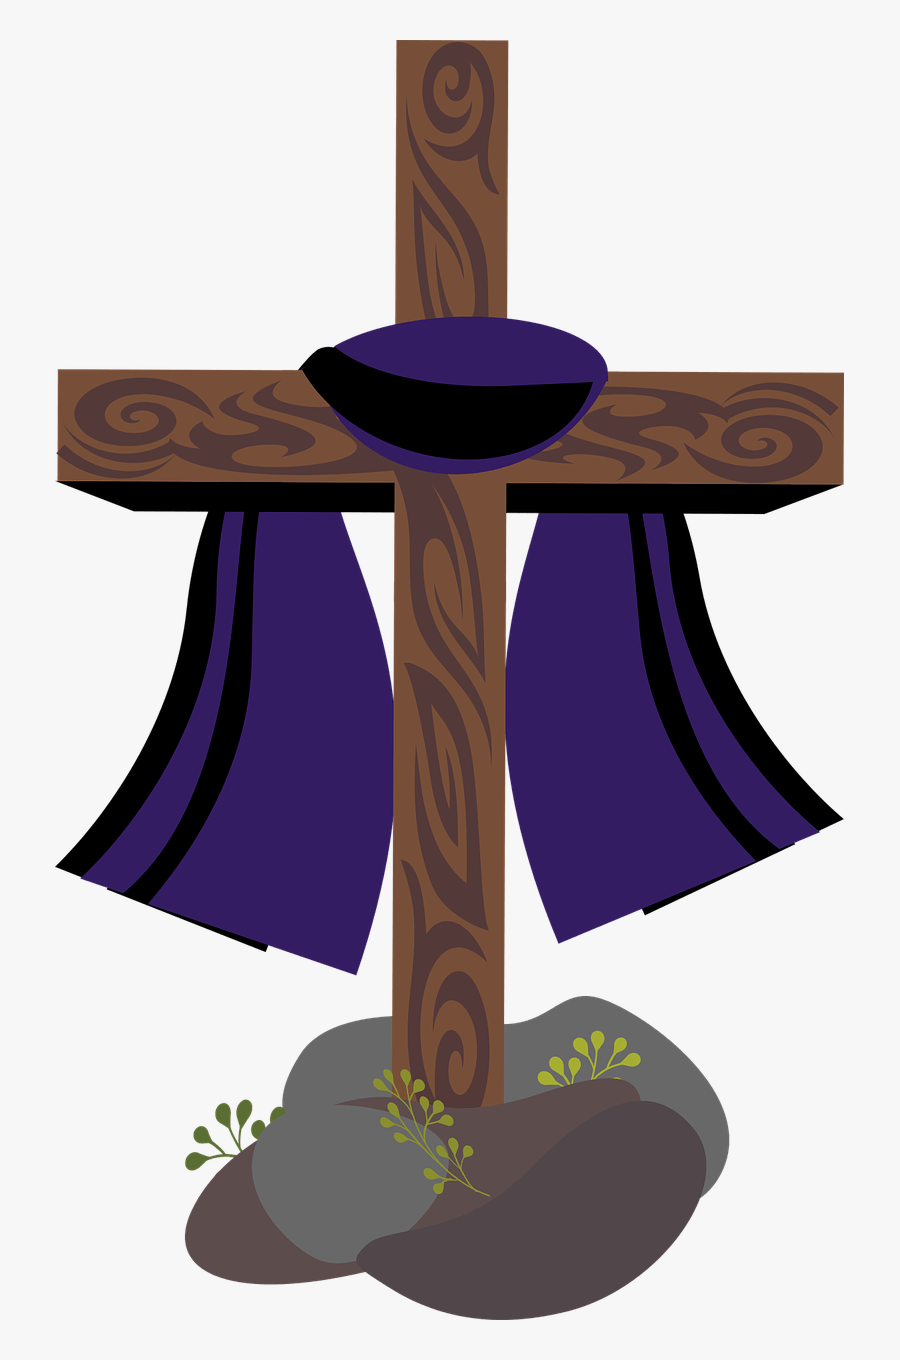 Graphic Lent Holy Week - Holy Week Clipart, Transparent Clipart